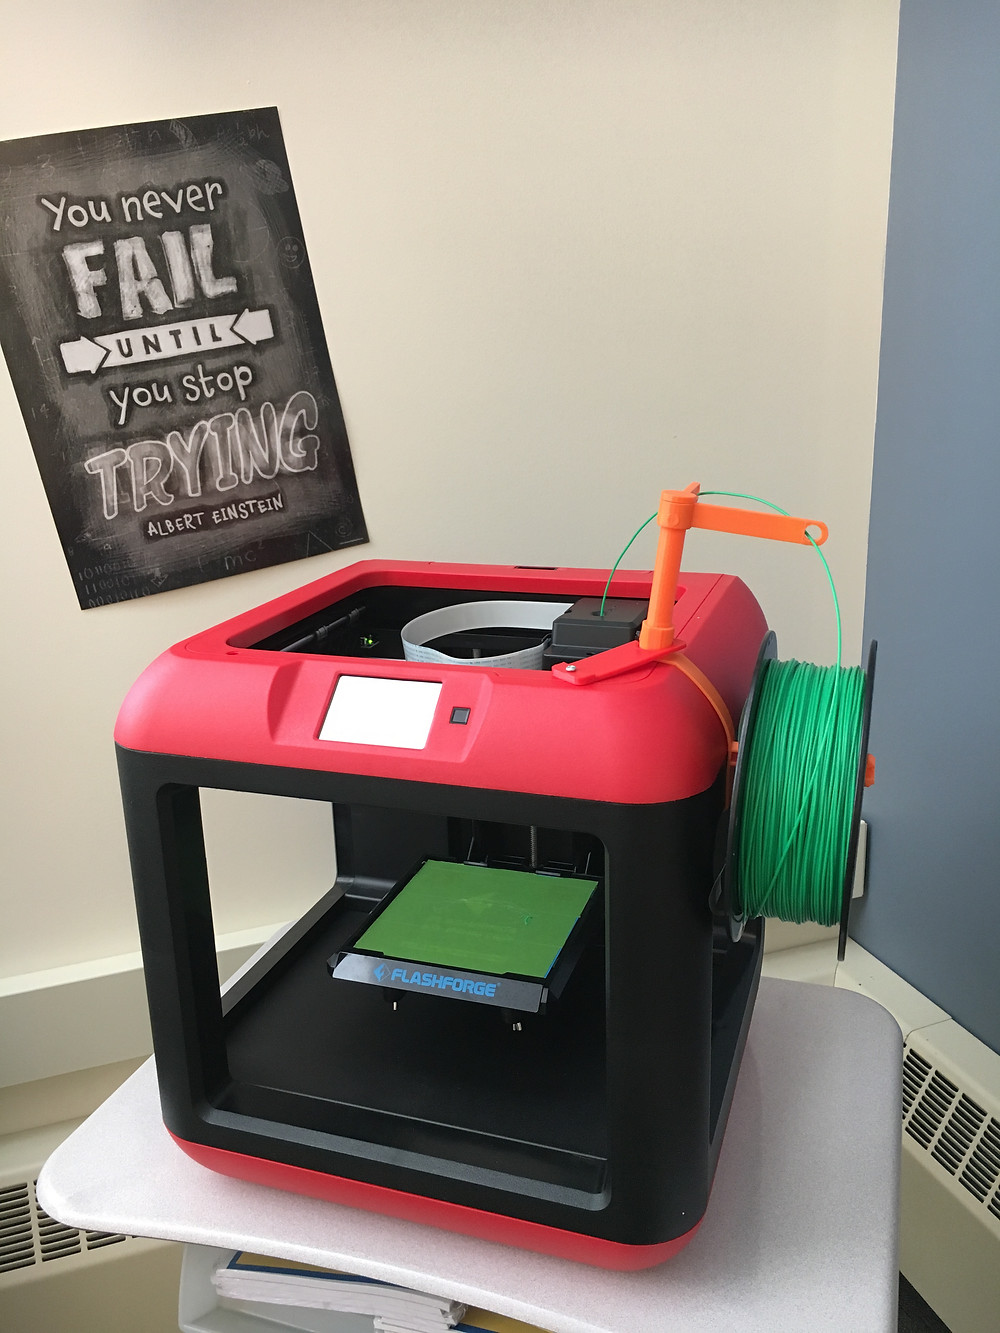 "This picture contains a Flashforge Finder 3d printer loaded with green PLA filament. In the background, a poster reads ""You never fail until you stop trying. Albert Einstein"""